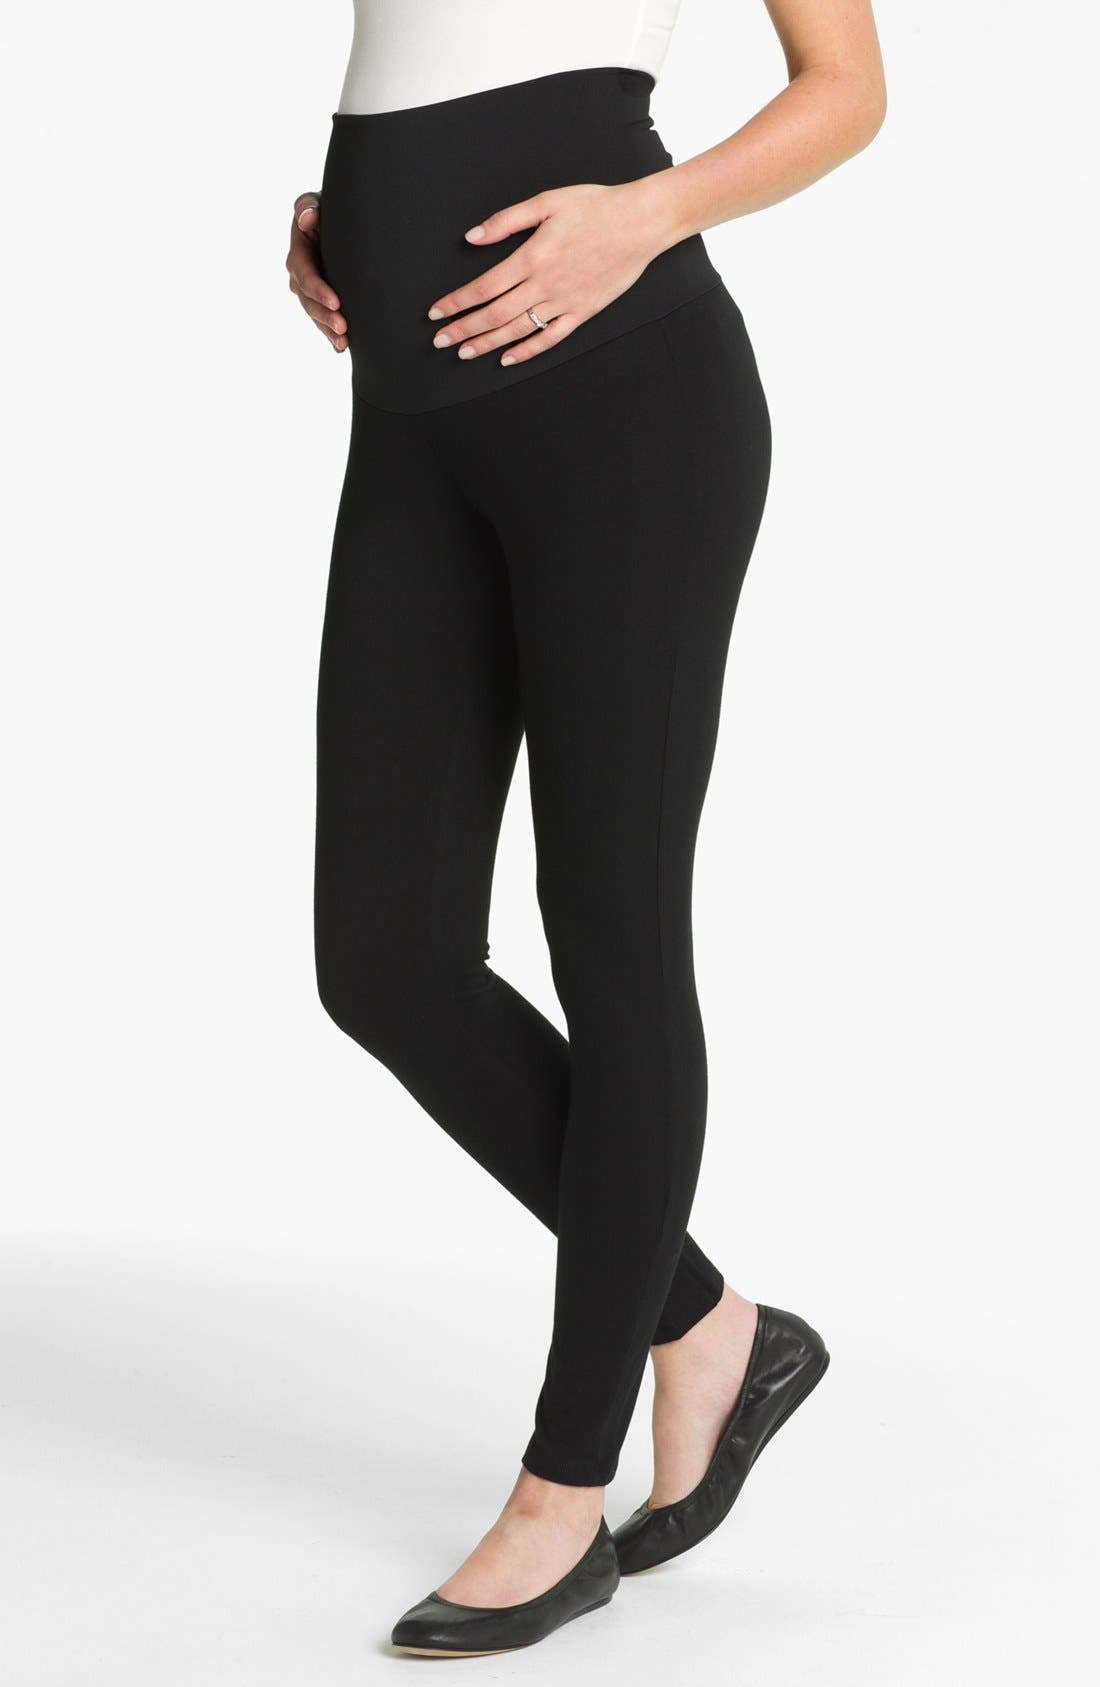 Main Image - Maternal America Belly Support Maternity Leggings